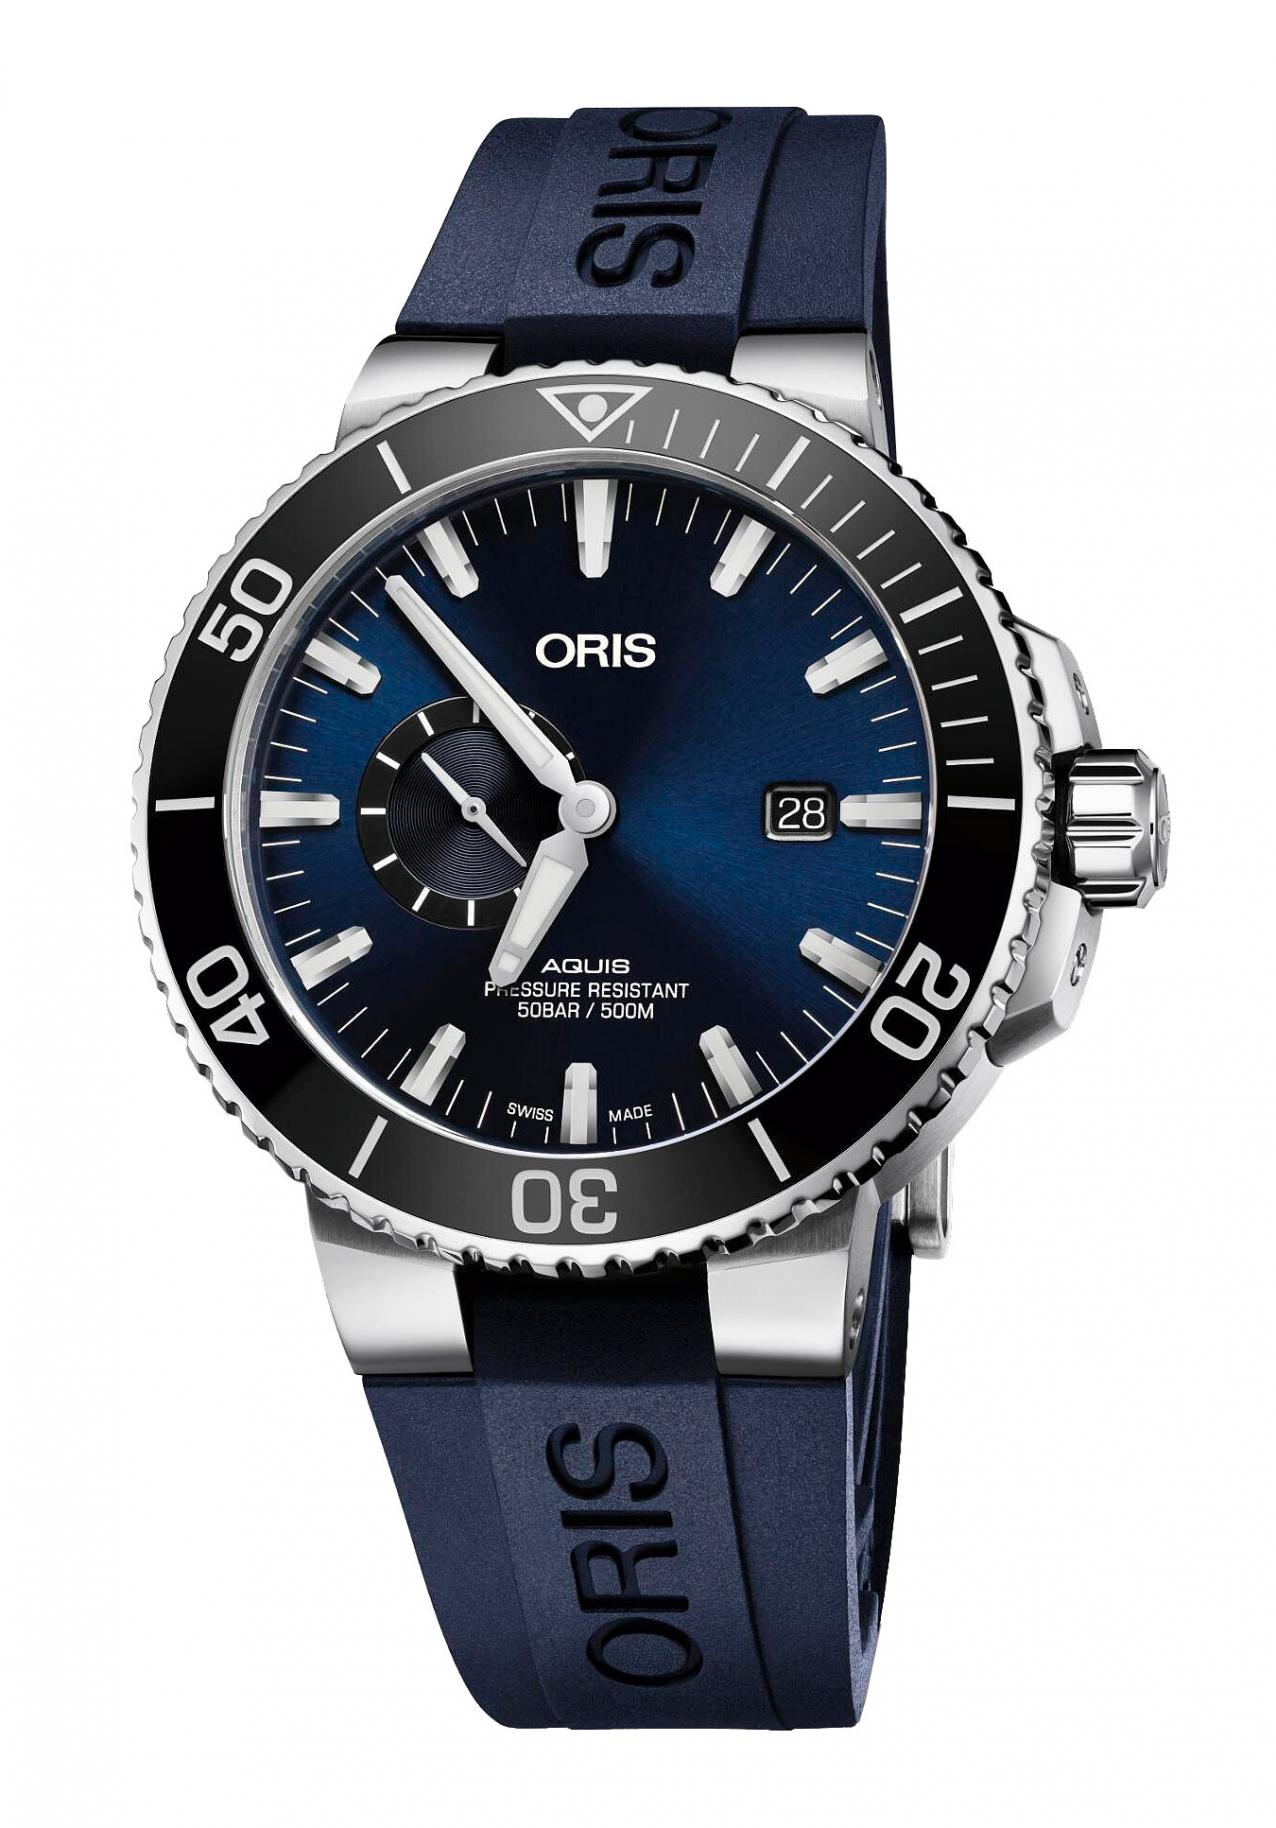 Oris Herrenuhr Aquis Small Second Automatik-Taucheruhr